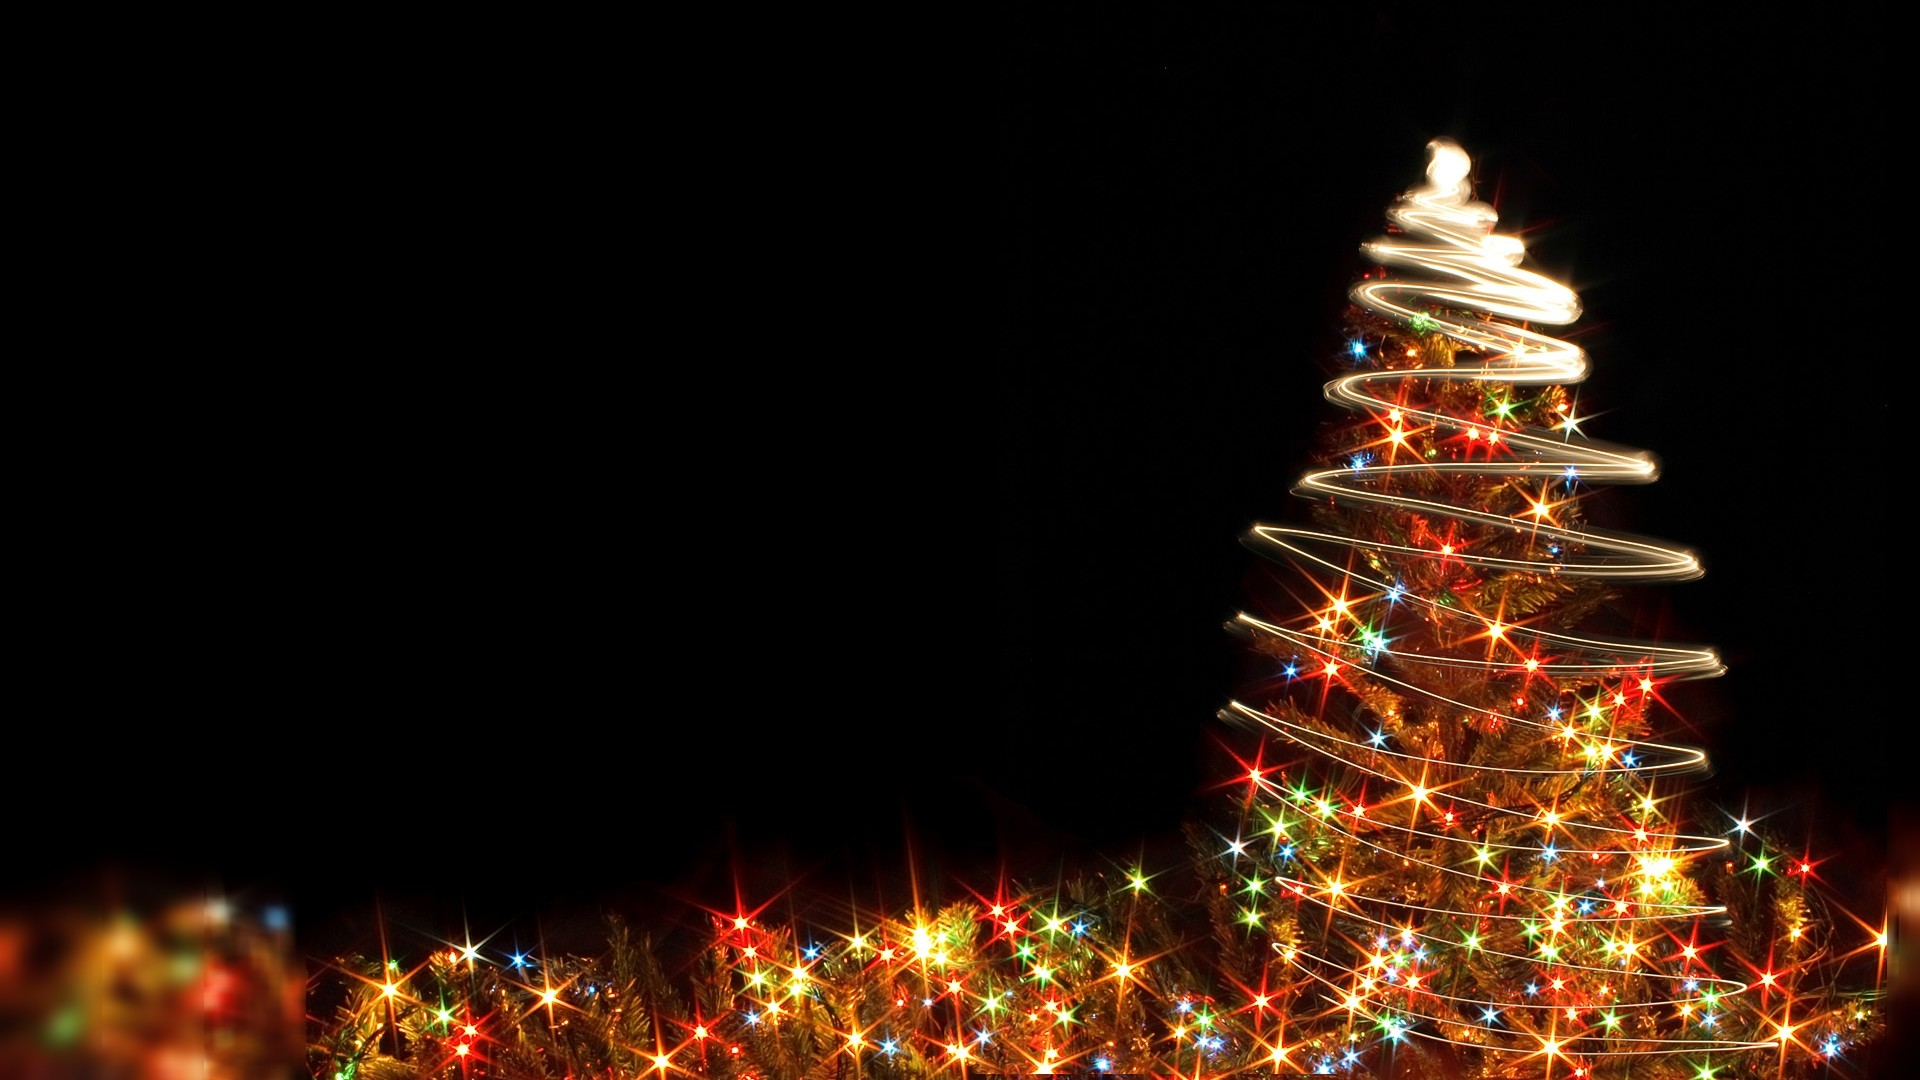 Widescreen Christmas Images | Thanh Grigsby, 1920×1080